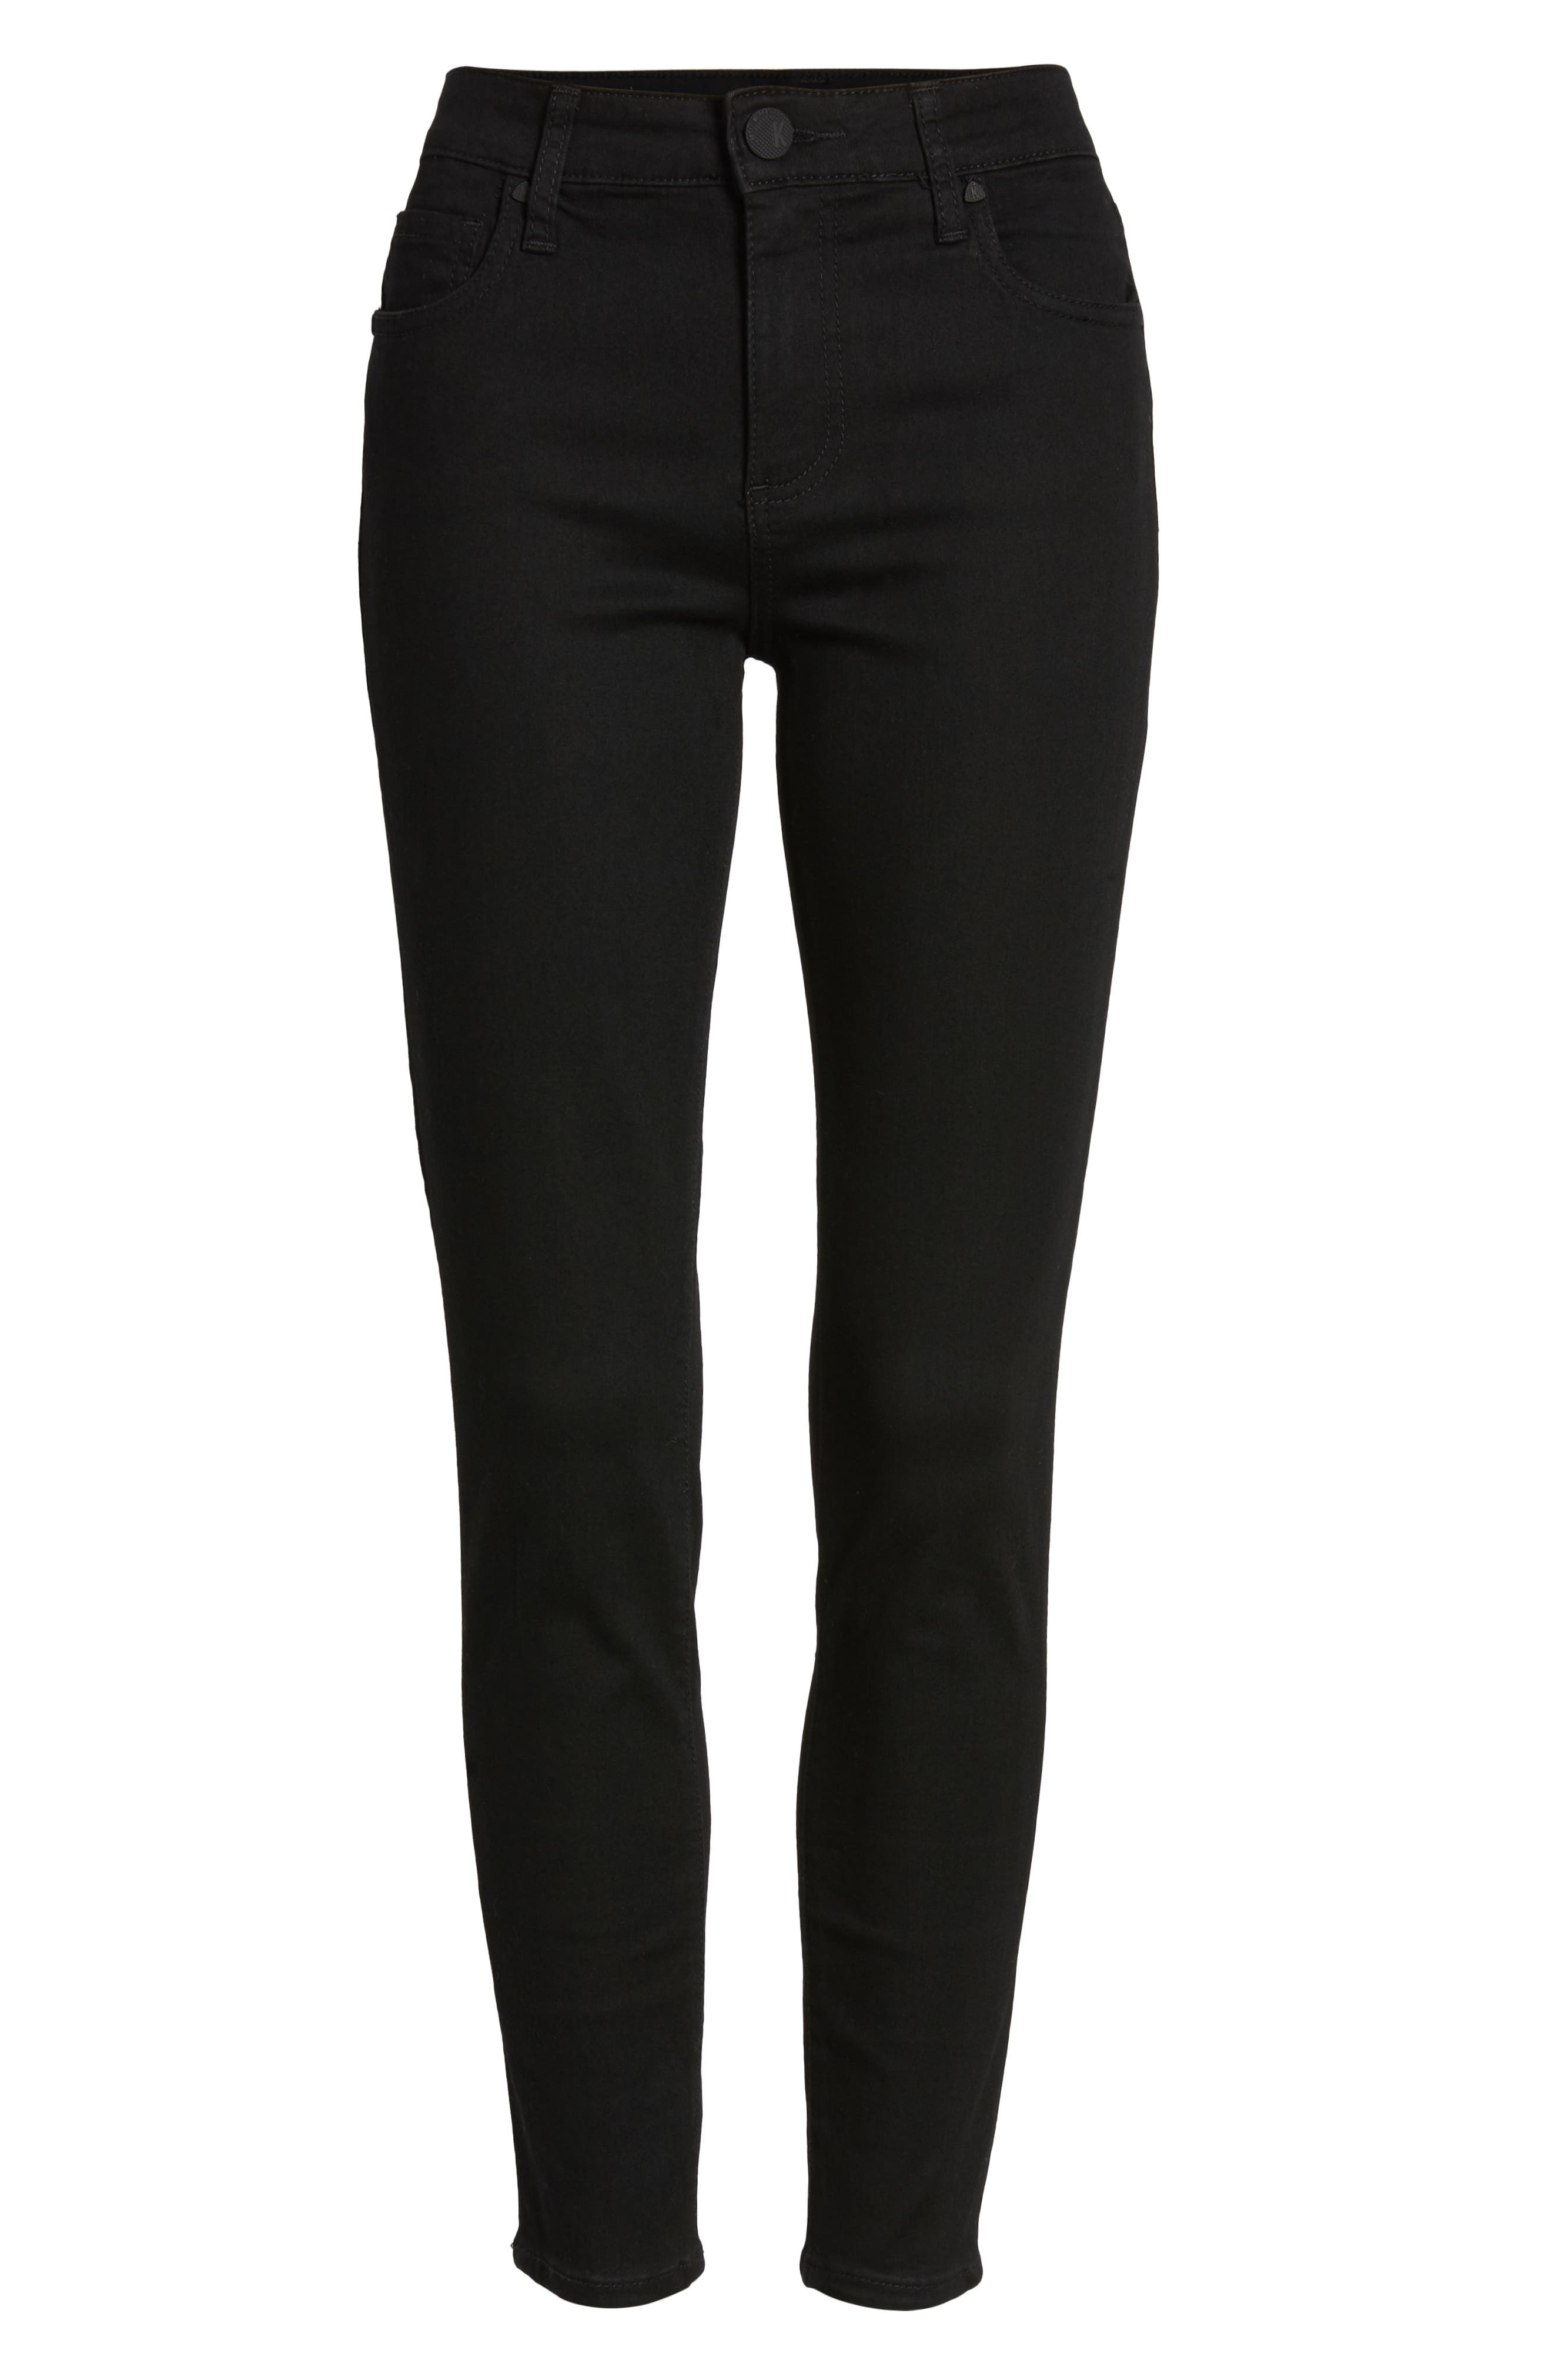 KUT FROM THE KLOTH, Donna High Waist Ankle Skinny Jeans, Alternate thumbnail 5, color, 002